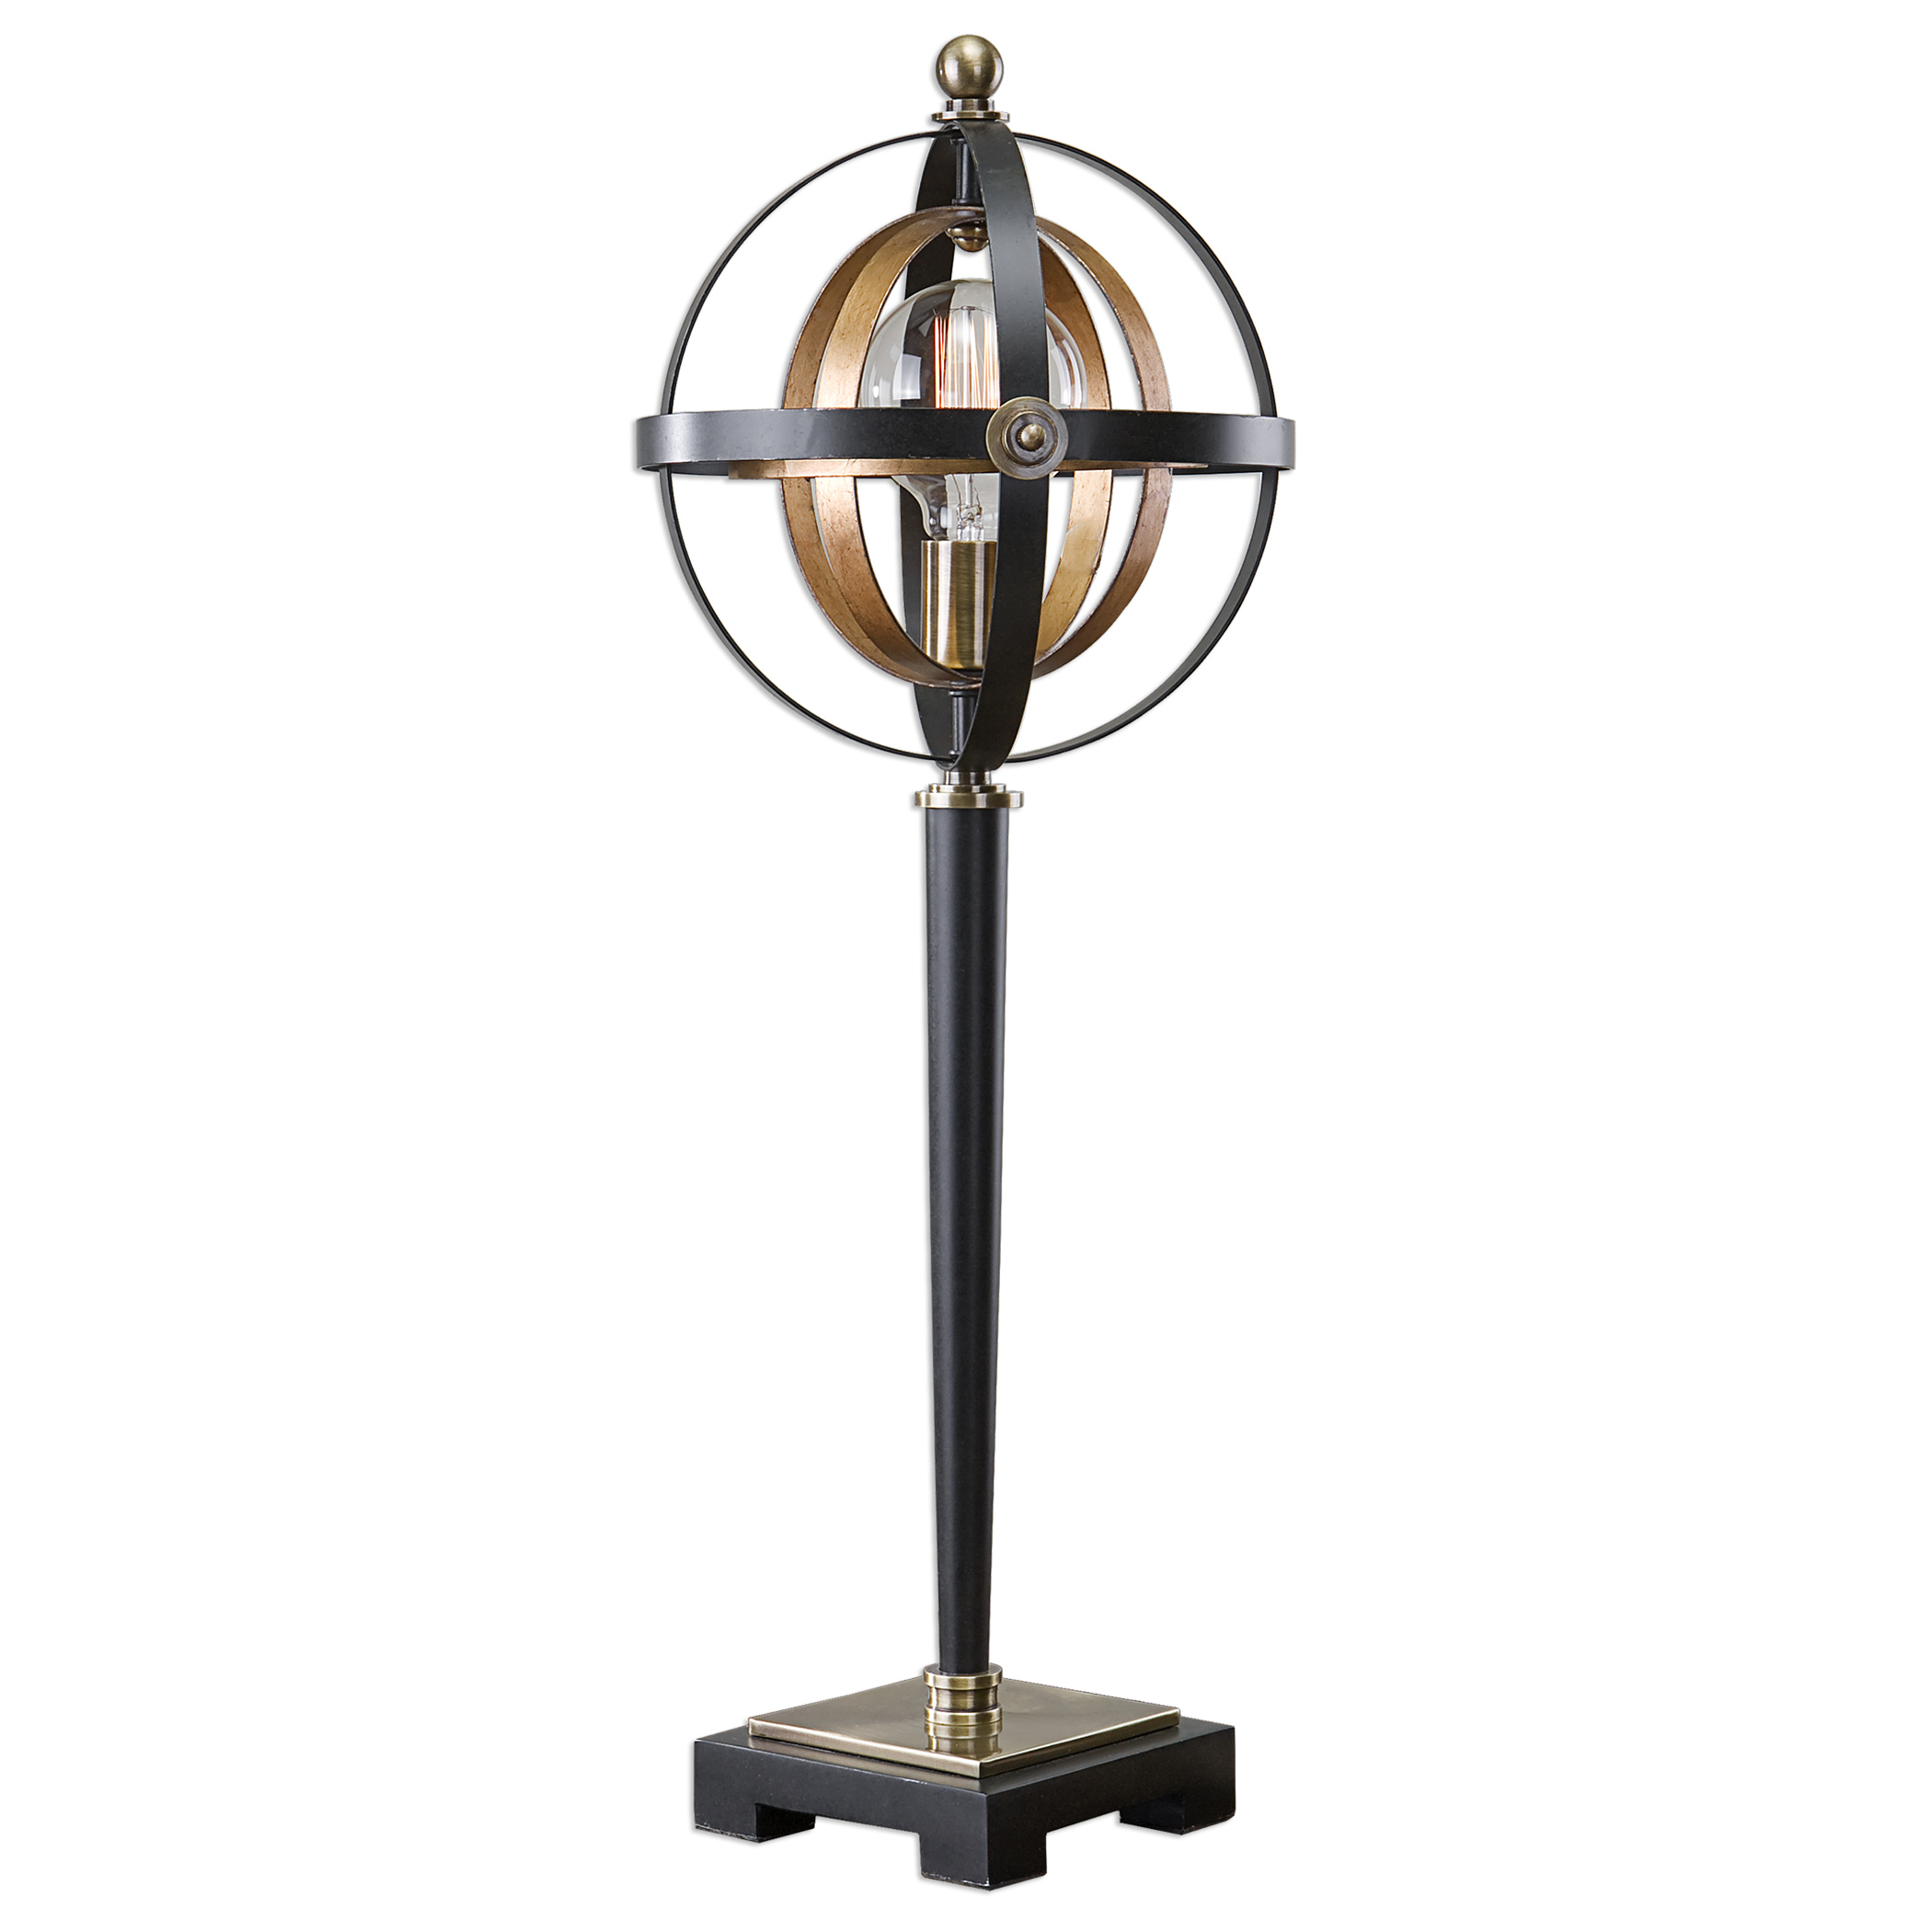 Accent Lamps Rondure Sphere Table Lamp by Uttermost at O'Dunk & O'Bright Furniture